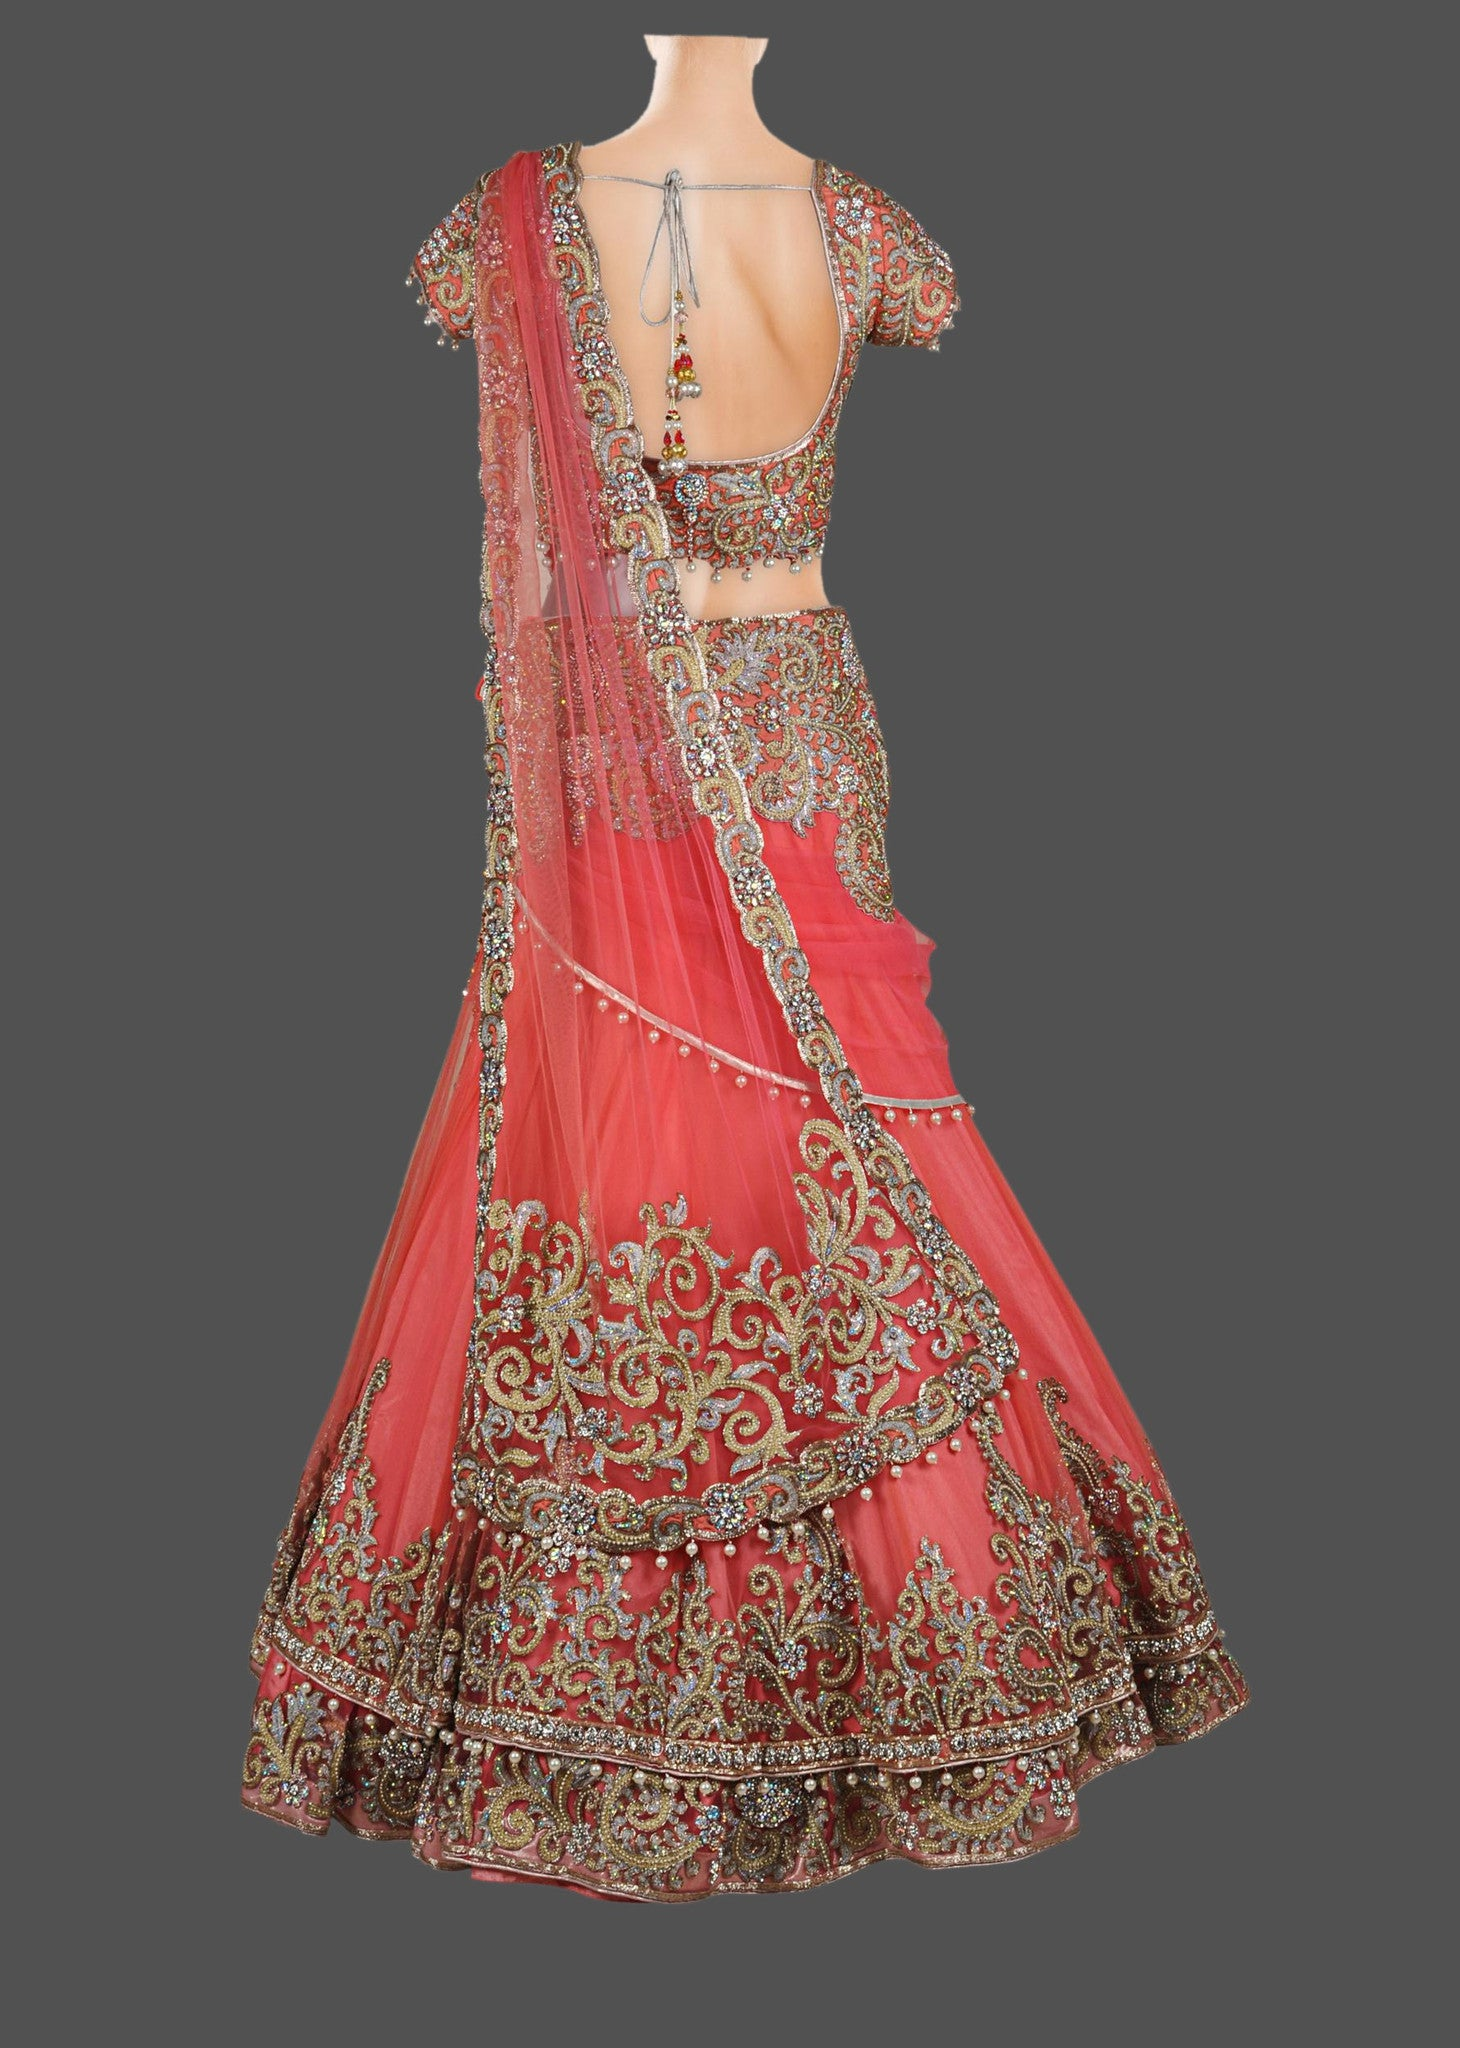 Peach and coral lehenga choli